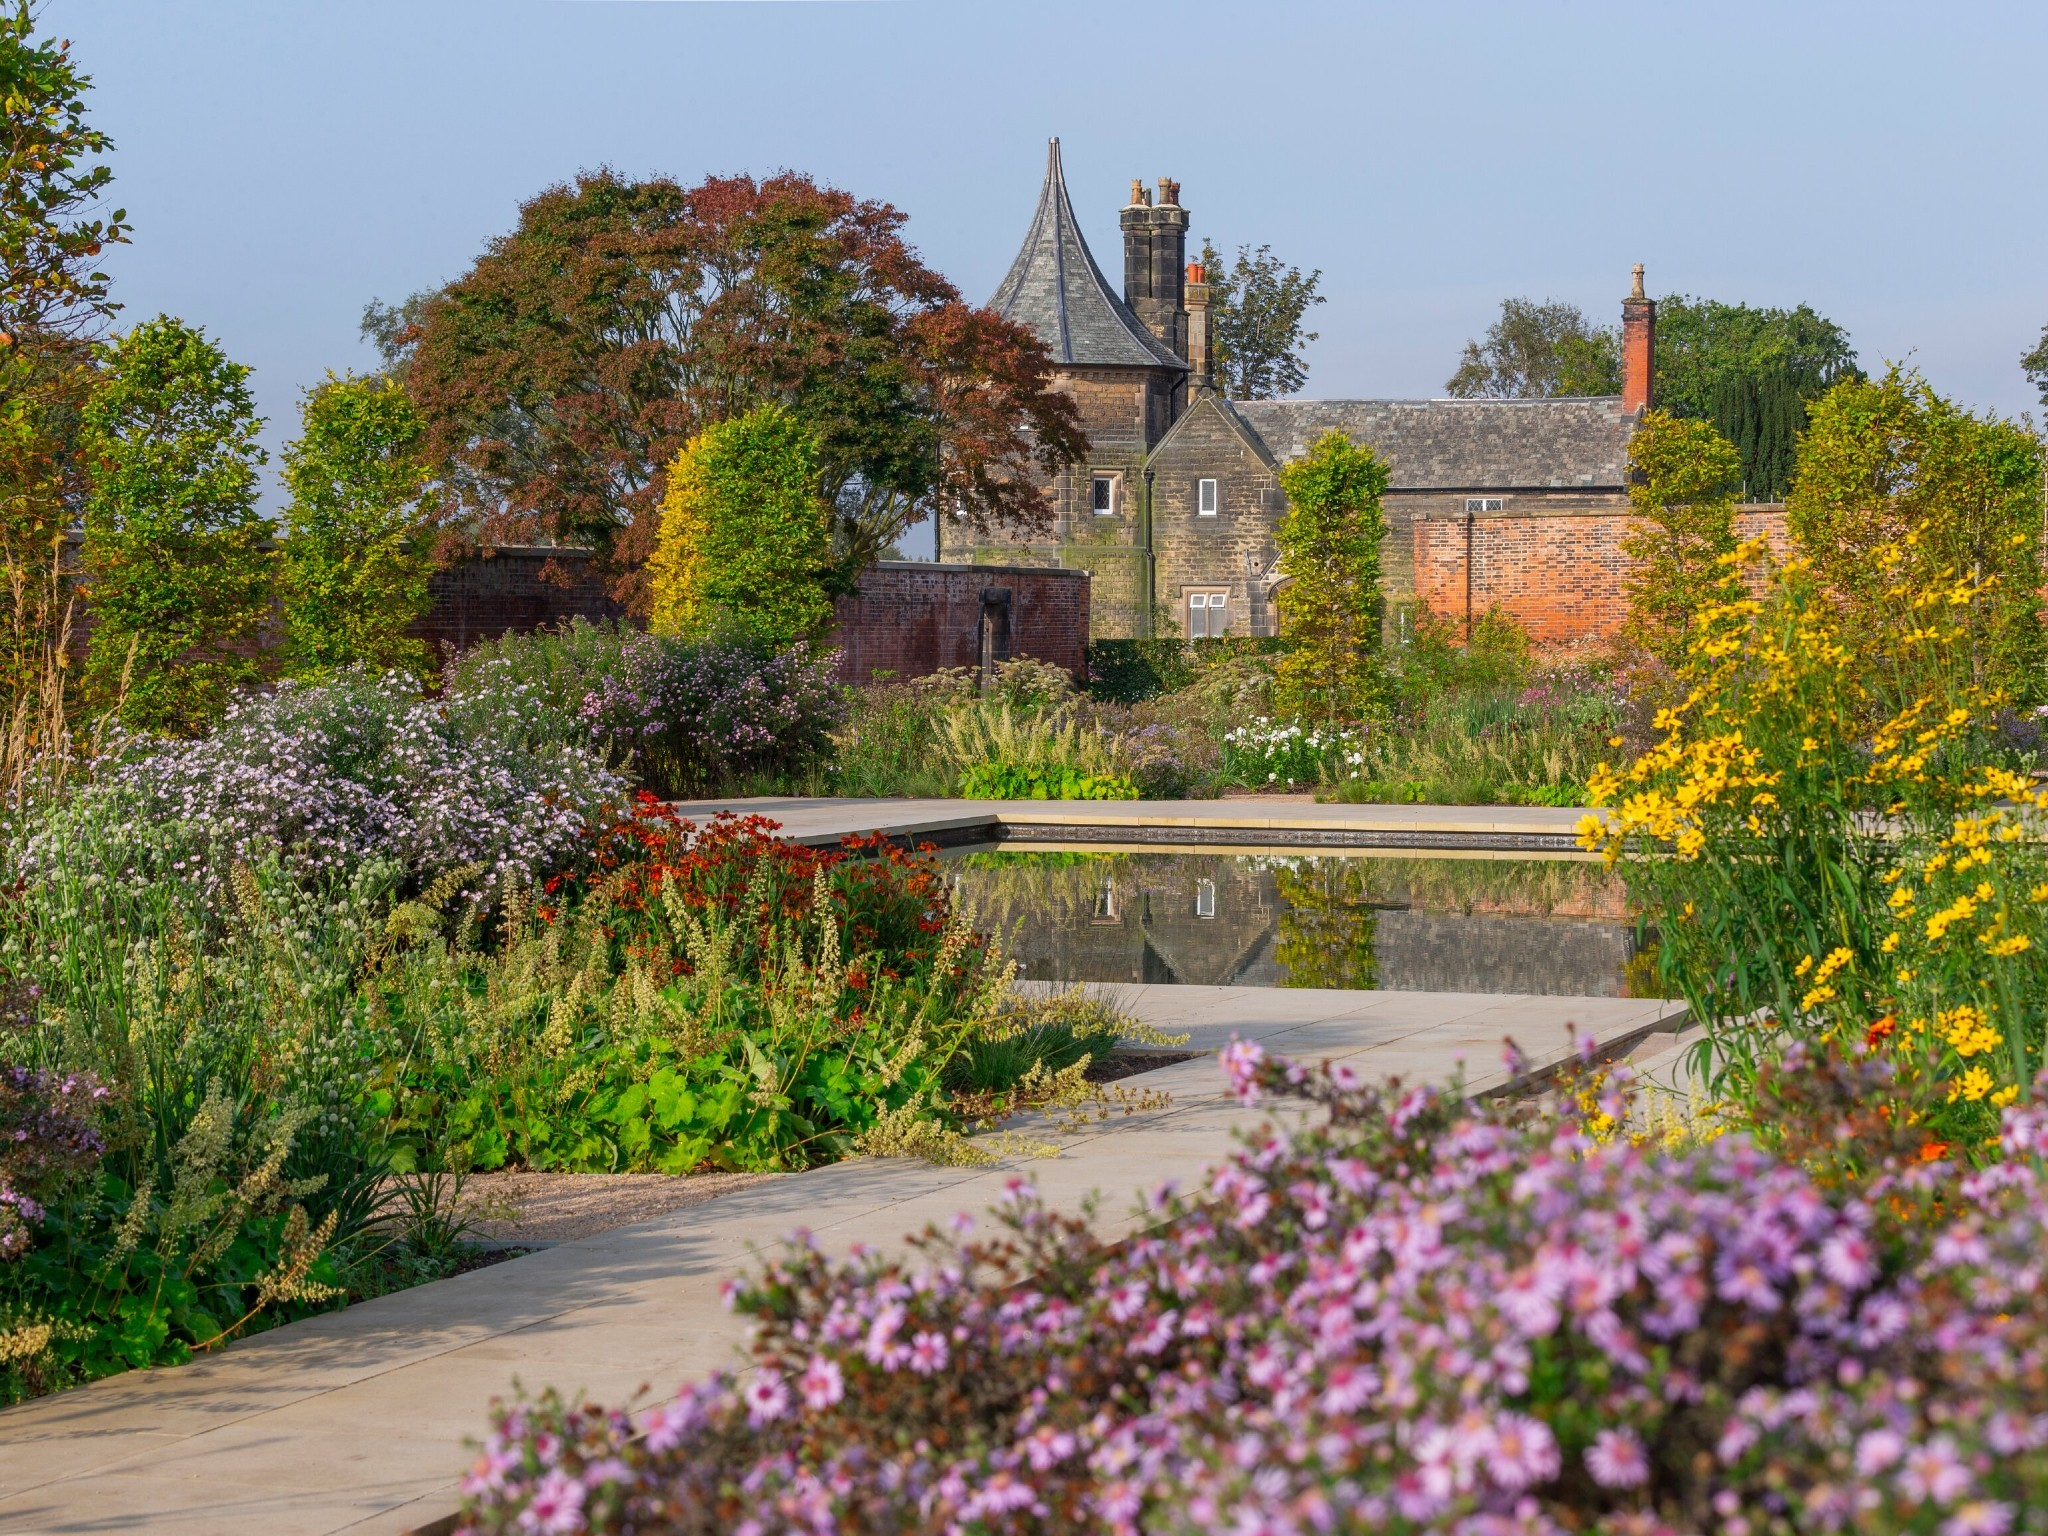 A pathway surrounded by flowers leads to a formal pond which is all overlooked by an old red-brick house